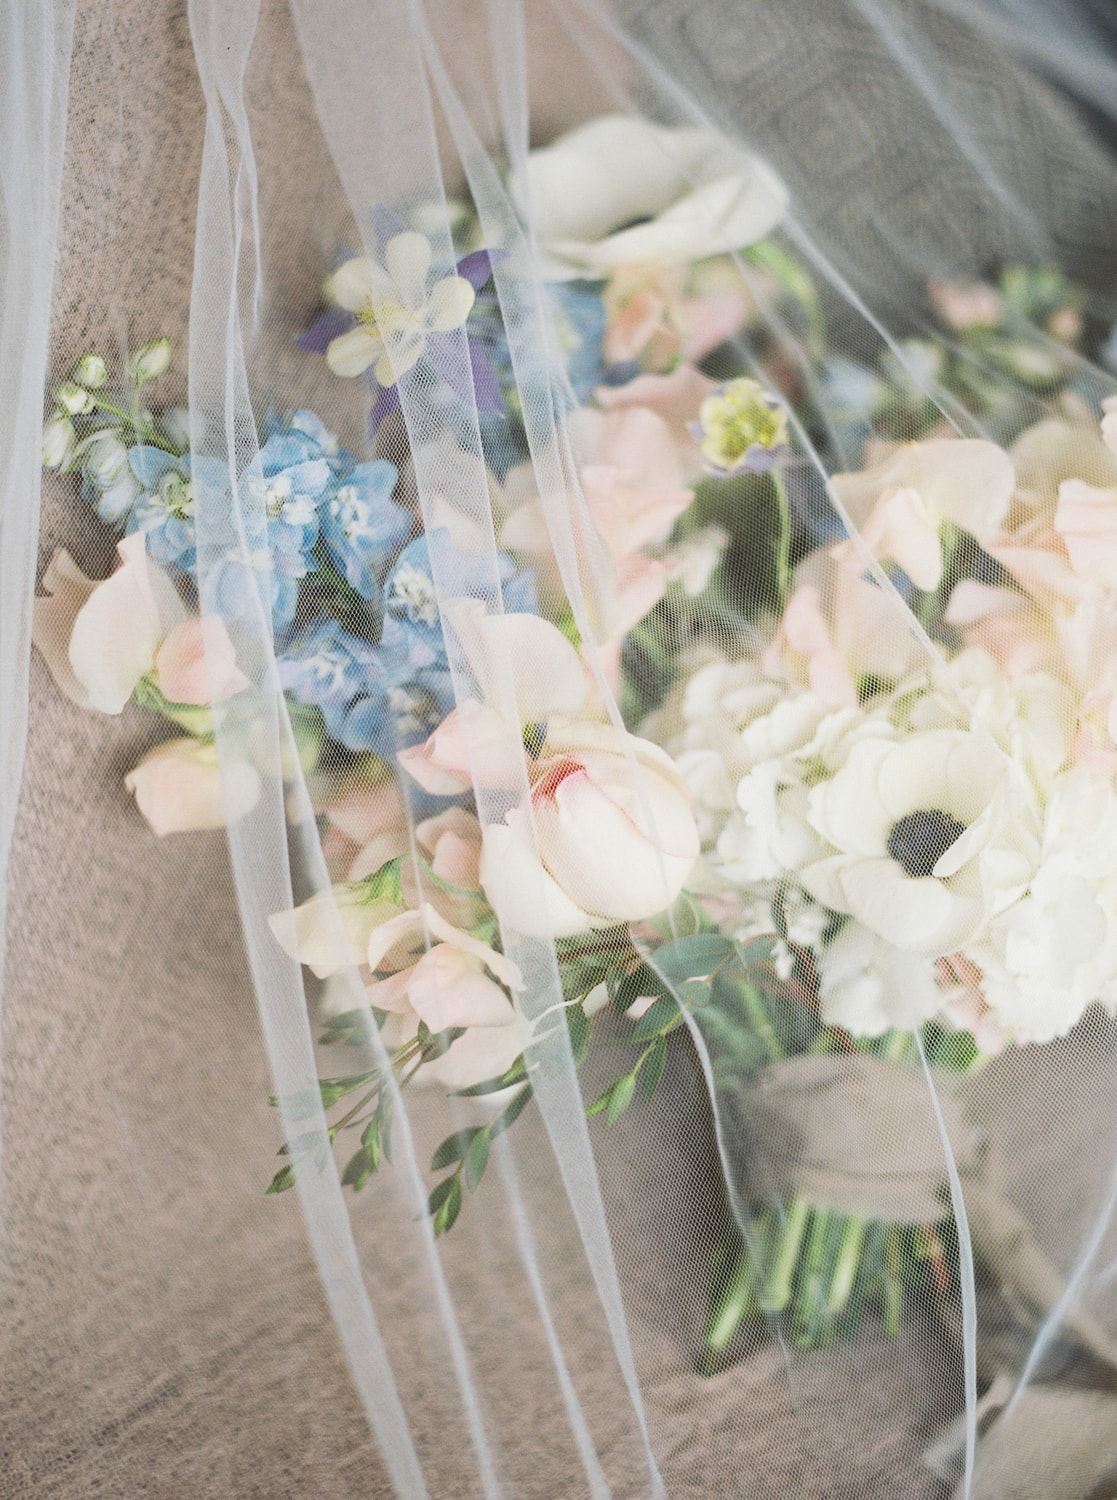 Bridal bouquet under the veil